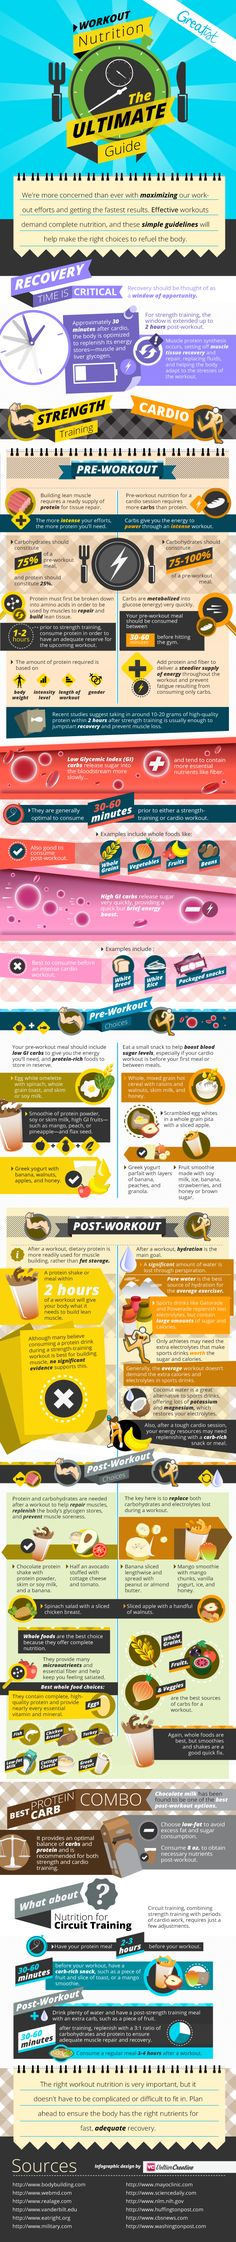 pre/post workout foods